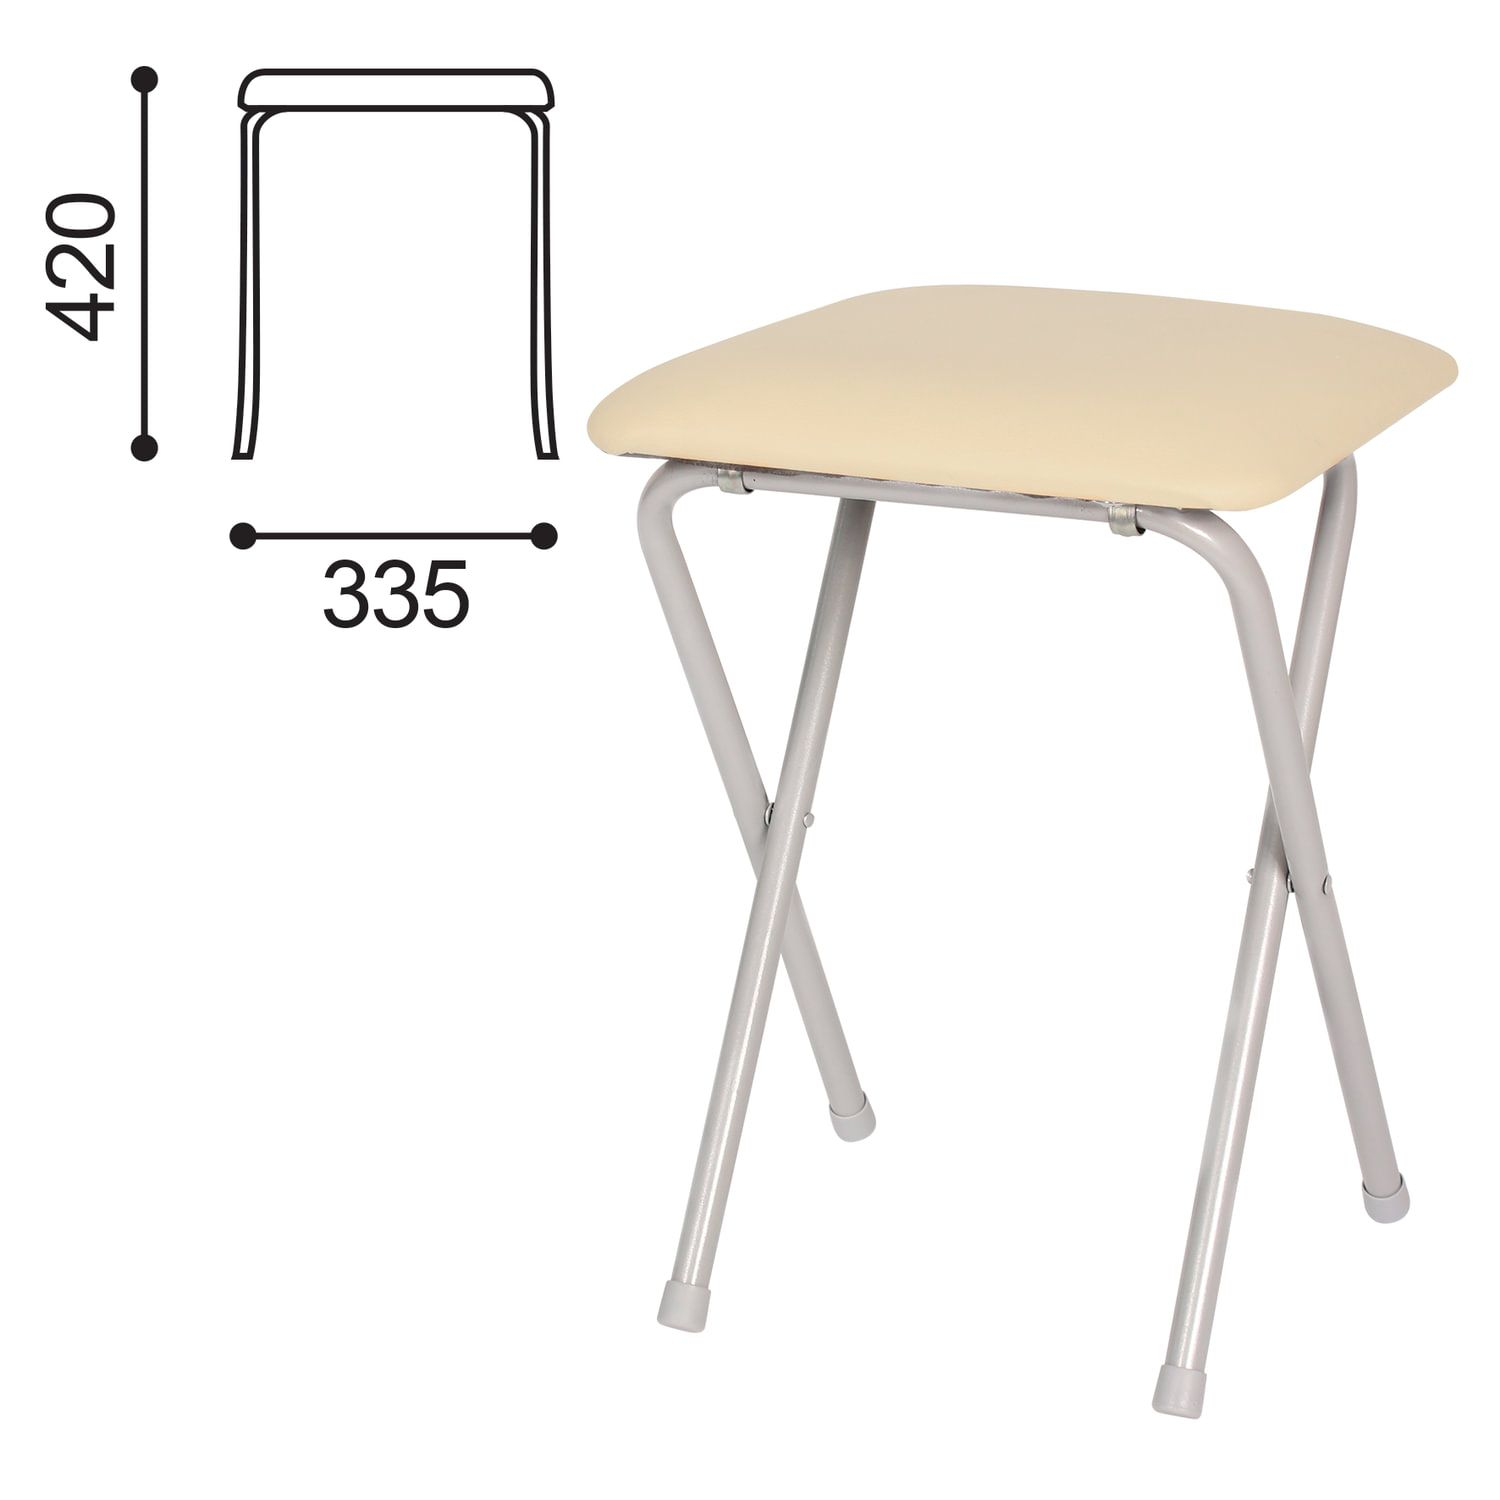 Folding RS01-02 stool, silver frame, beige leather